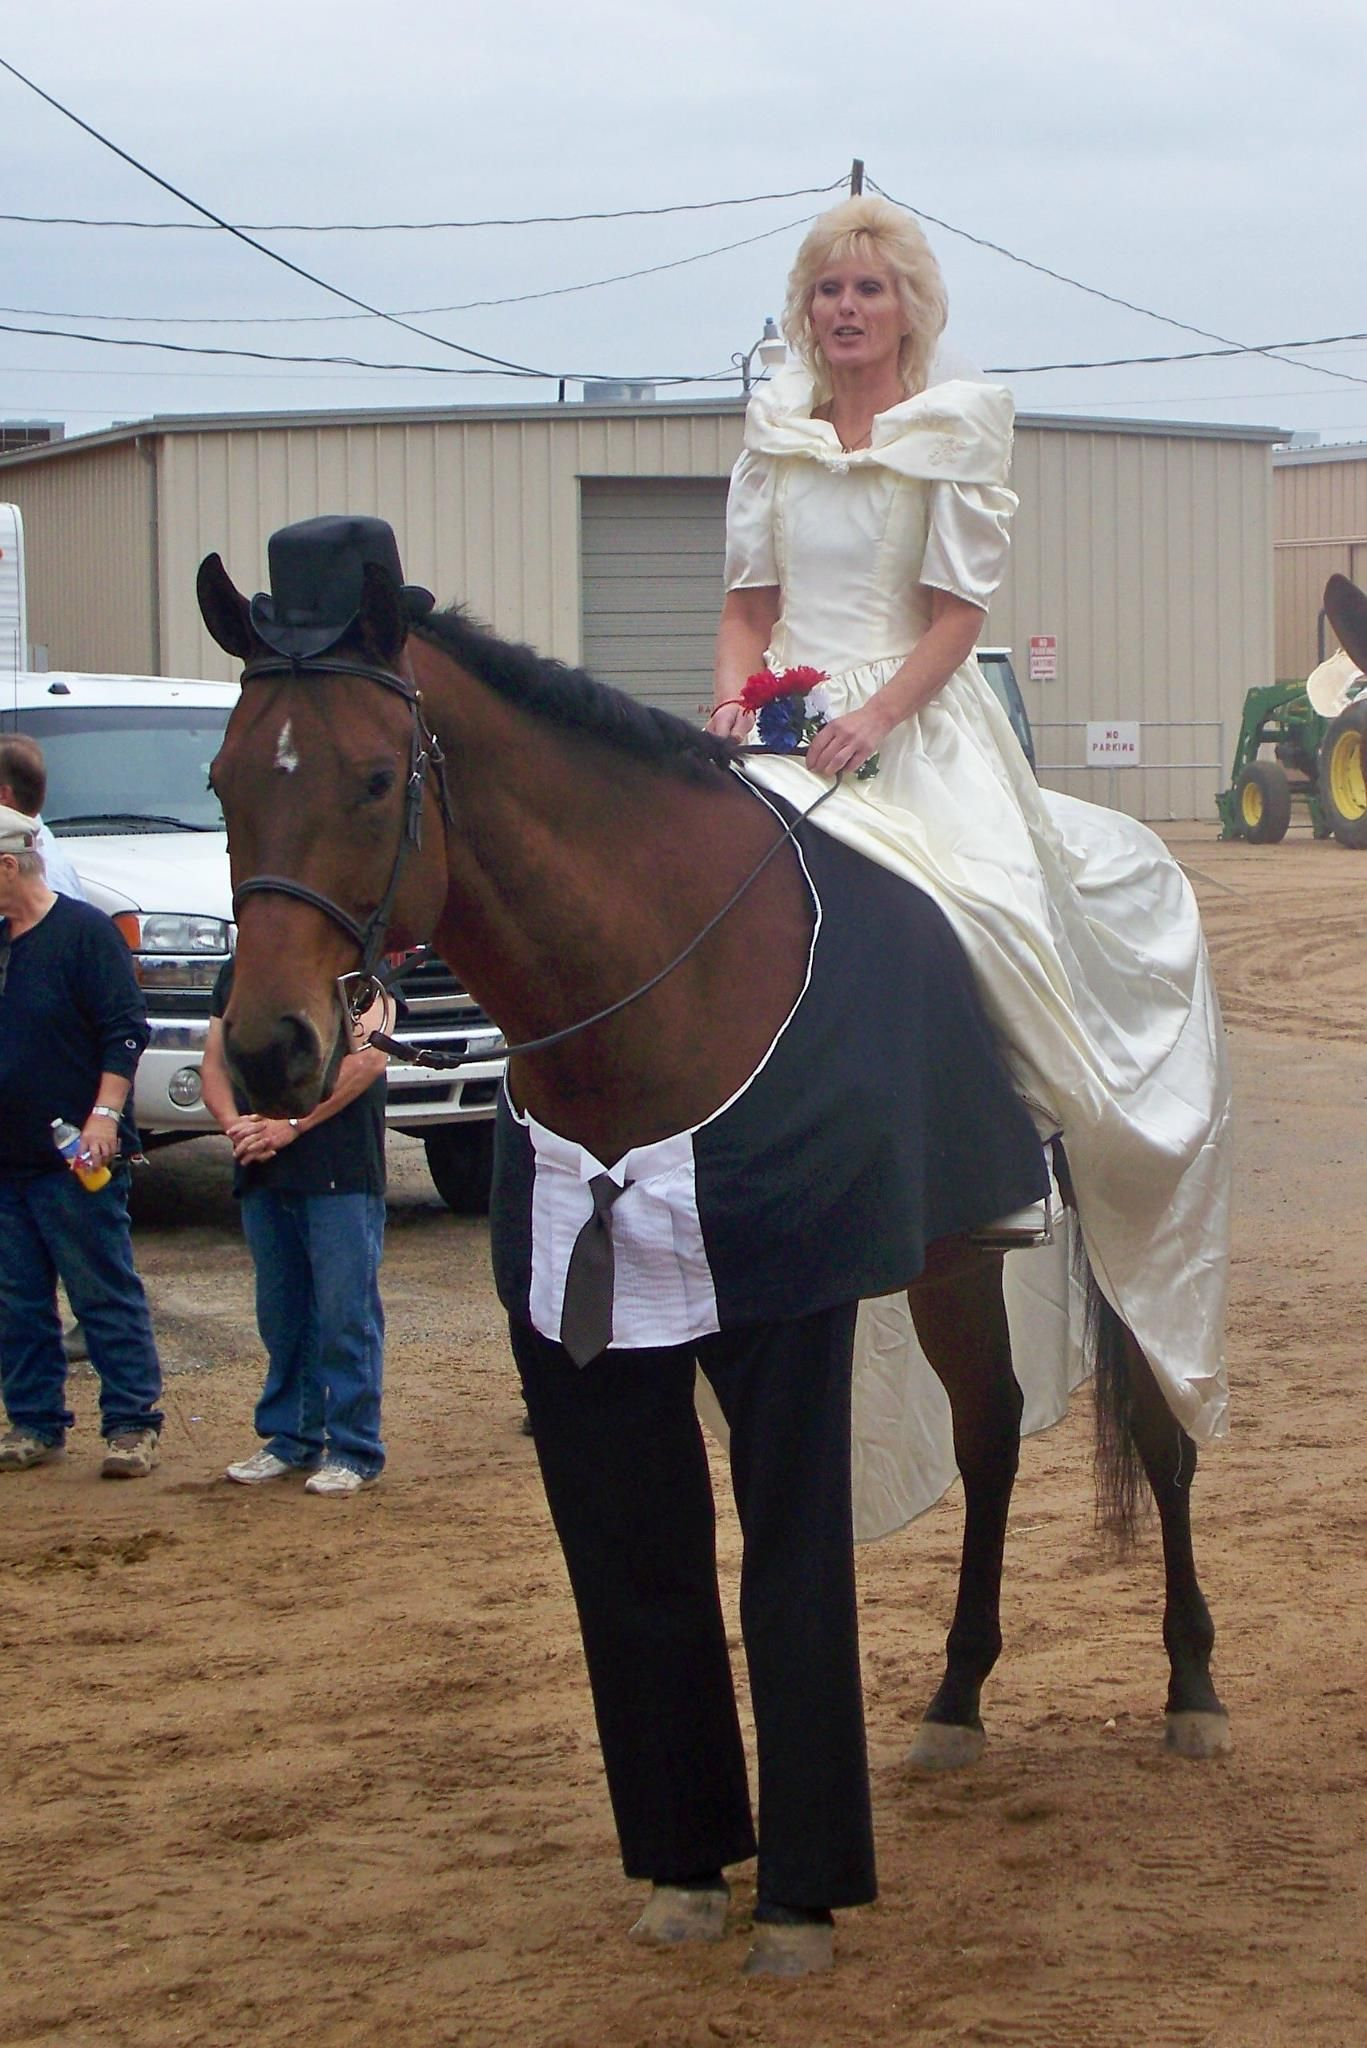 Check out some great horse costume ideas and try out a tasty horse treat to serve on Halloween americashorsedaily.com/happy-halloween.  sc 1 st  Pinterest & Check out some great horse costume ideas and try out a tasty horse ...